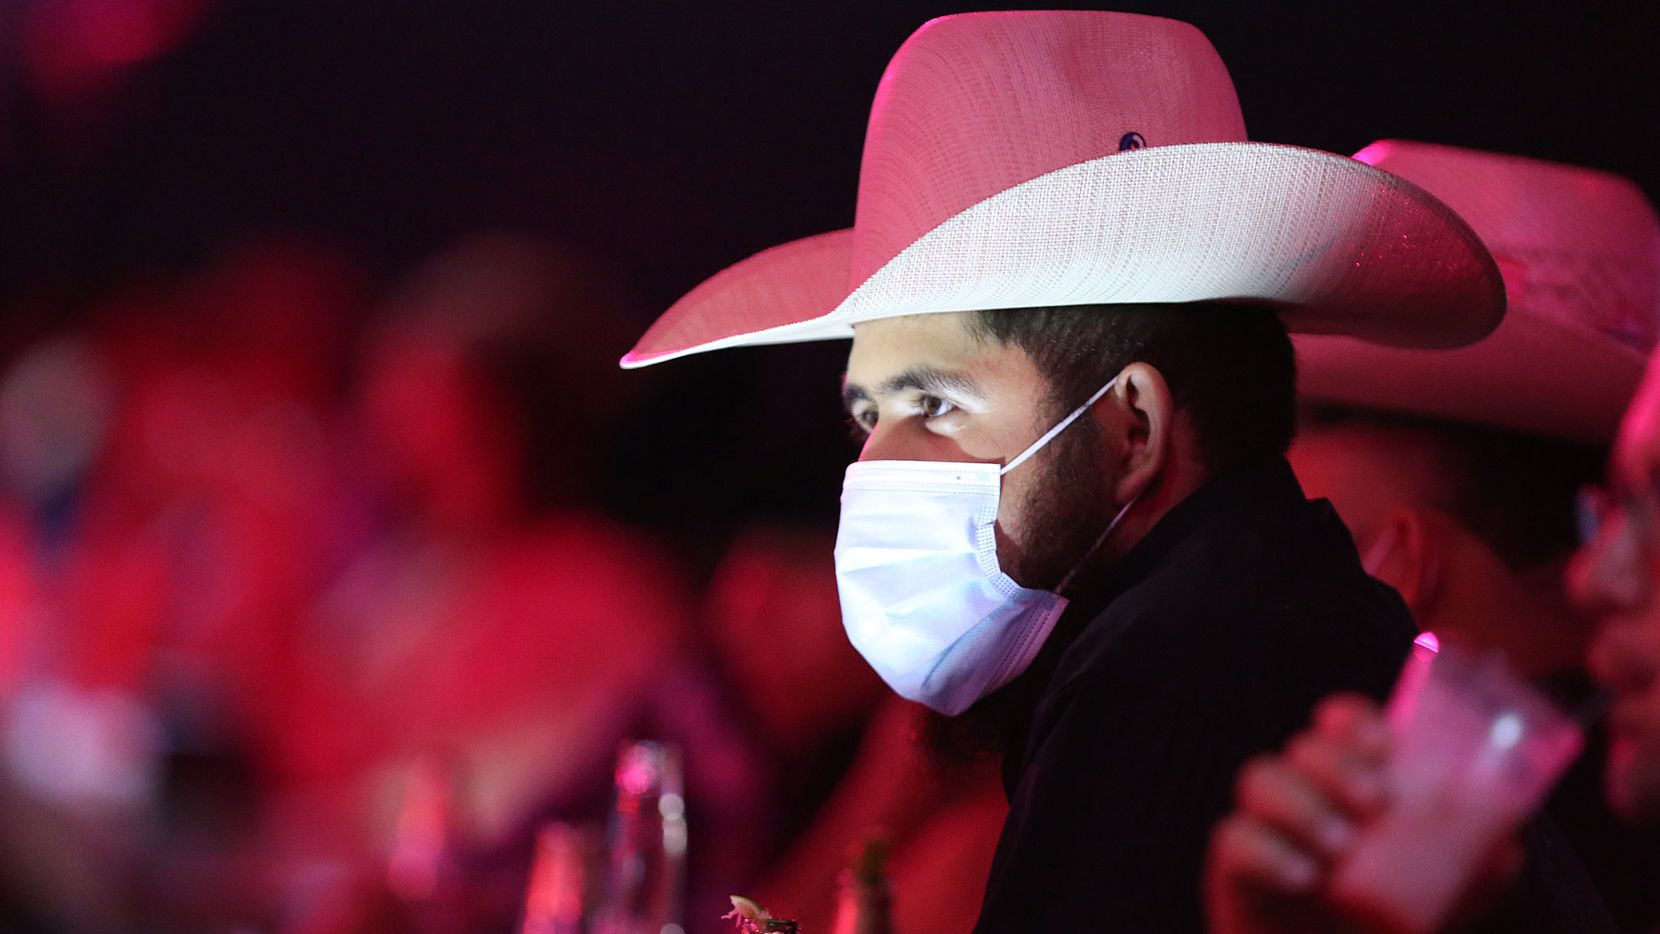 Following the lead of Dallas County, Tarrant County and the city of McKinney, the Plano City Council will vote today on an ordinance that would require mask-wearing at local businesses. (Photo Omar Vega / Al Dia Dallas)